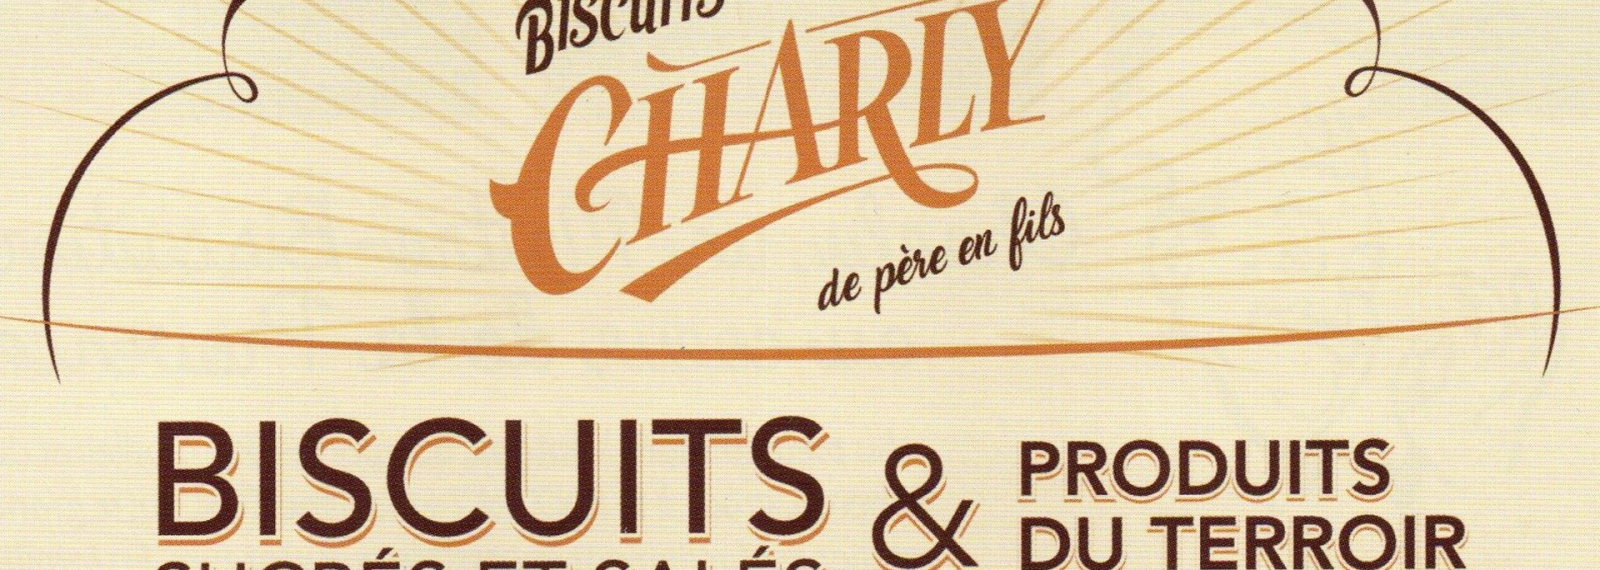 Biscuiterie Charly